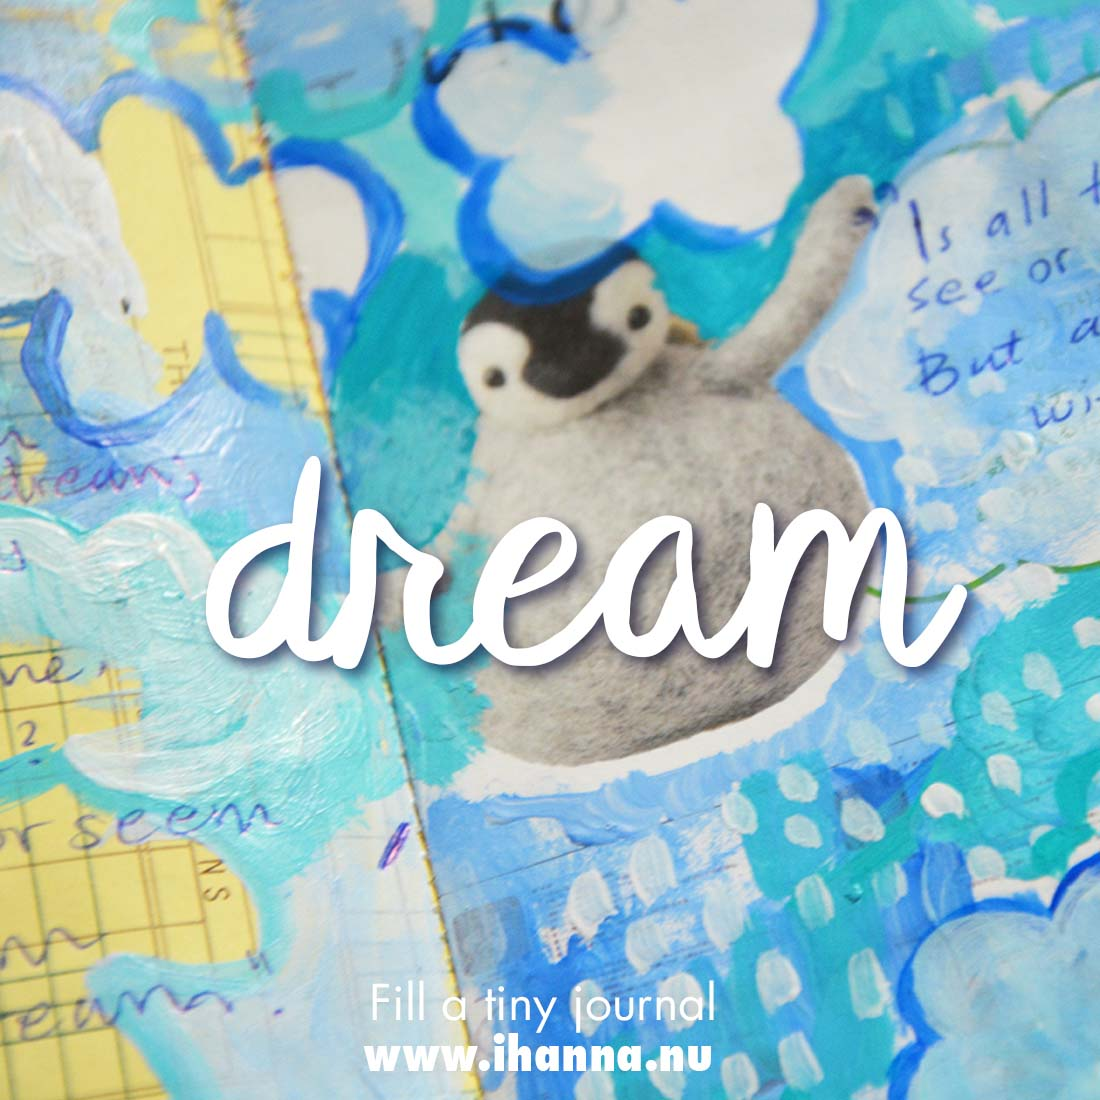 Fill a tiny journal: Dreams